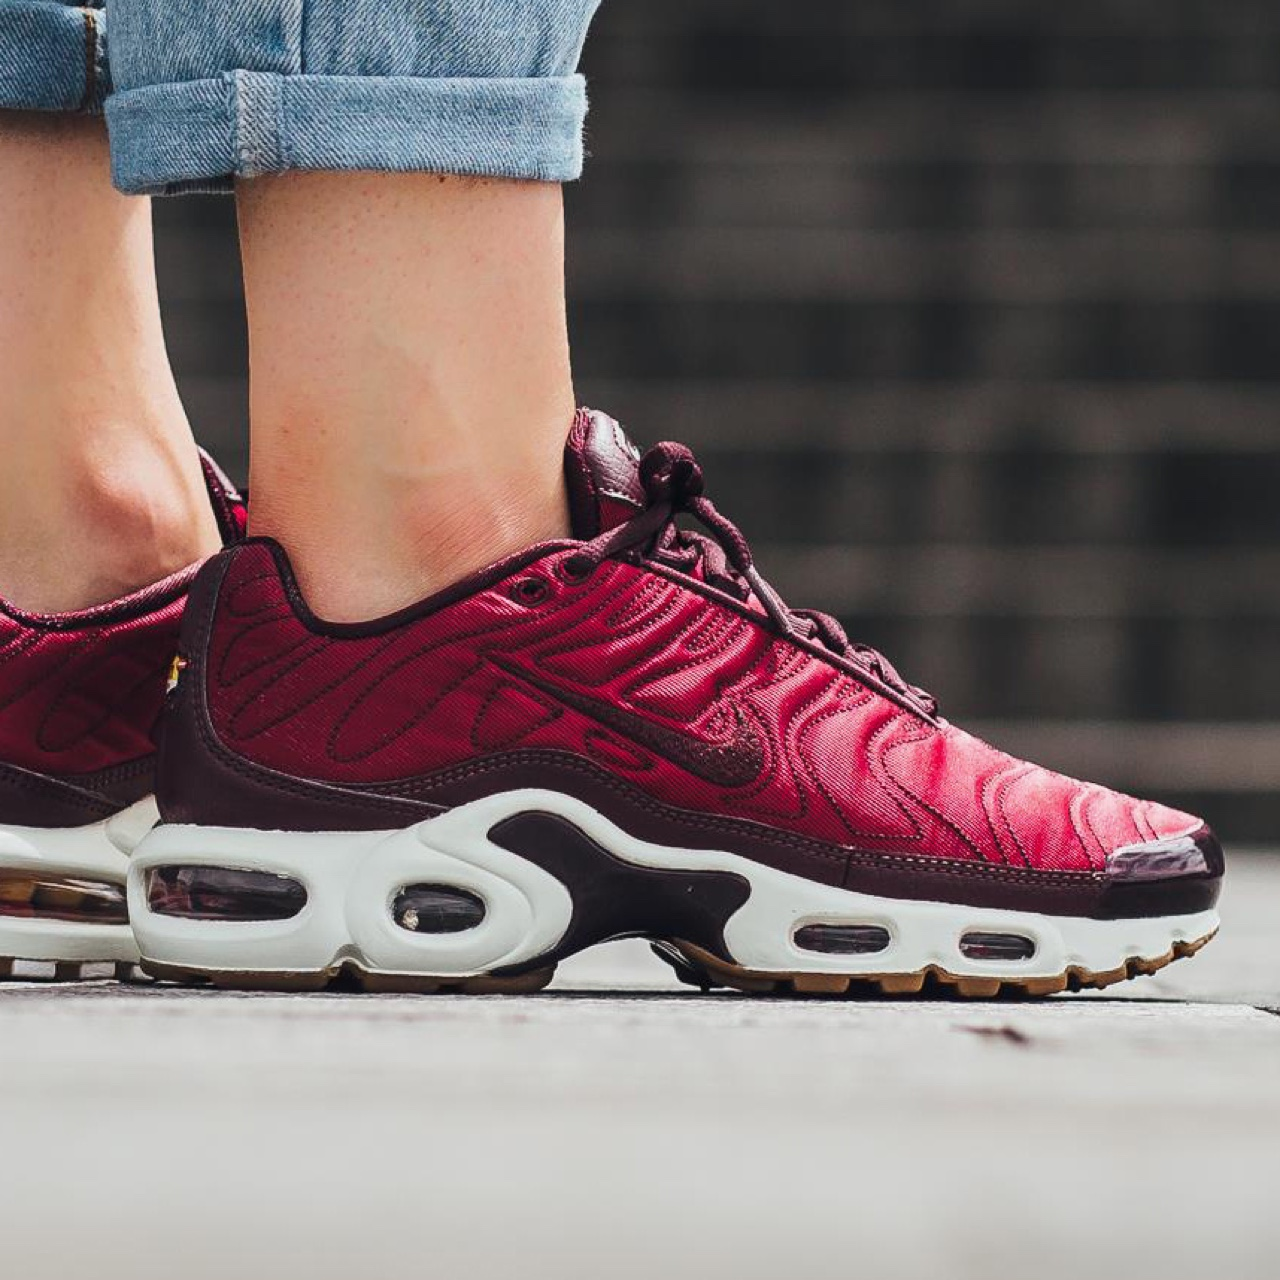 Women's Nike Air Max Plus PRM in Night Nght Maroon